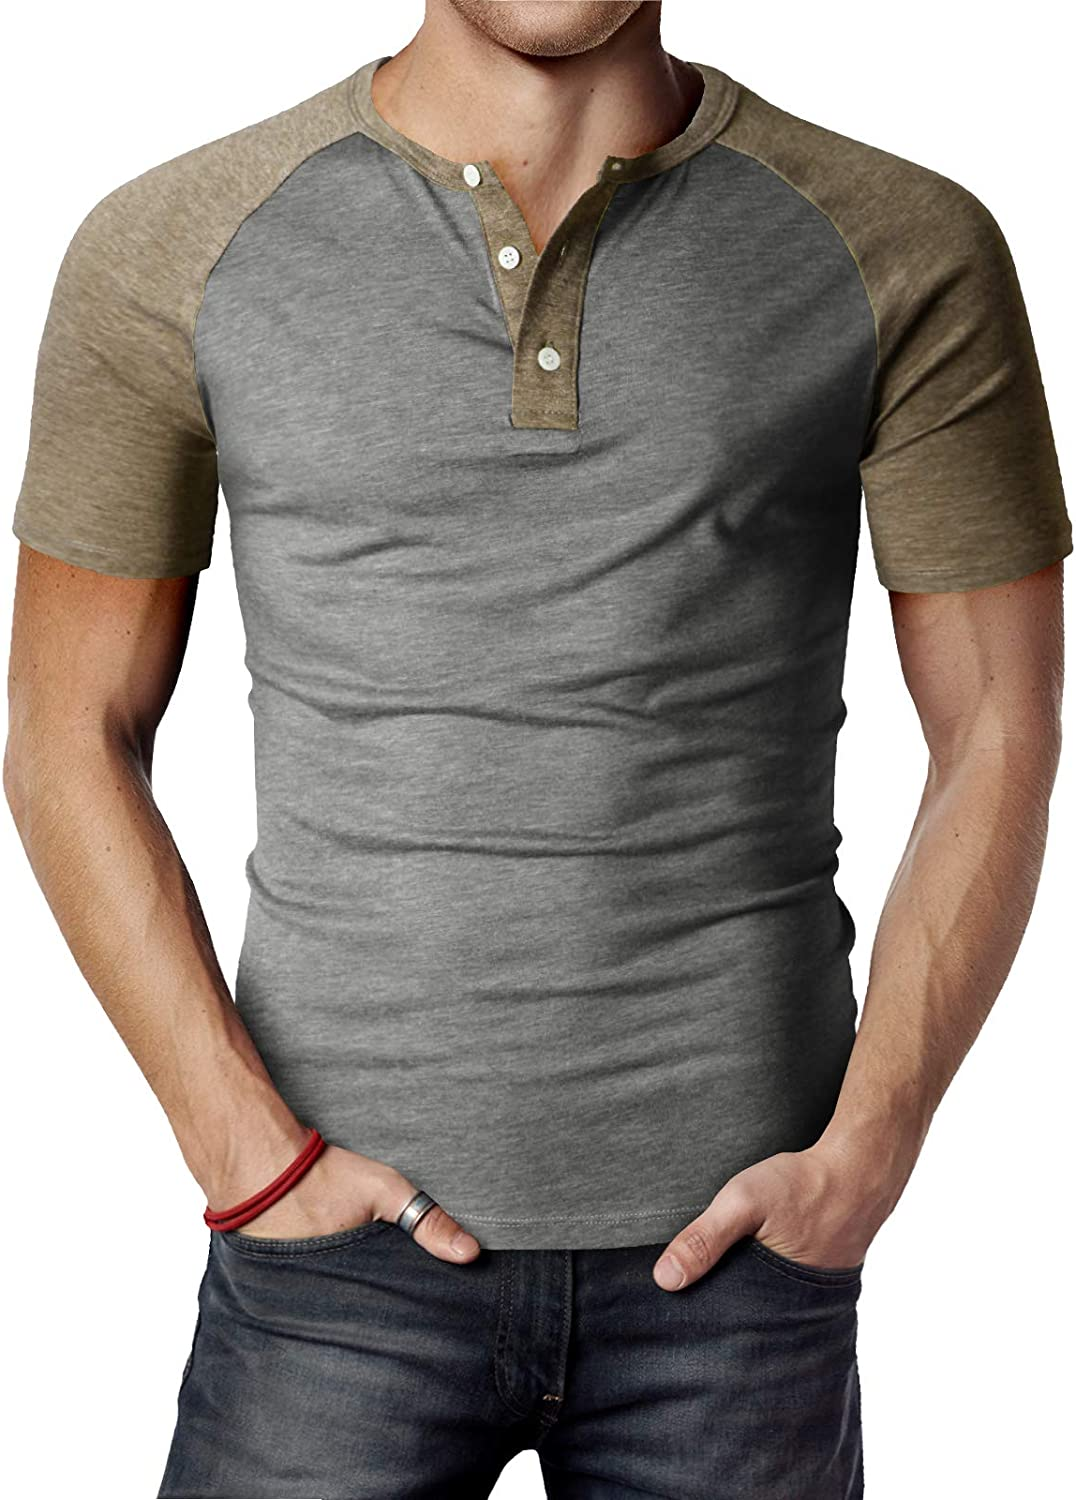 H2H Men Casual Slim Fit T-Shirt Short Sleeve Lightweight Shirt